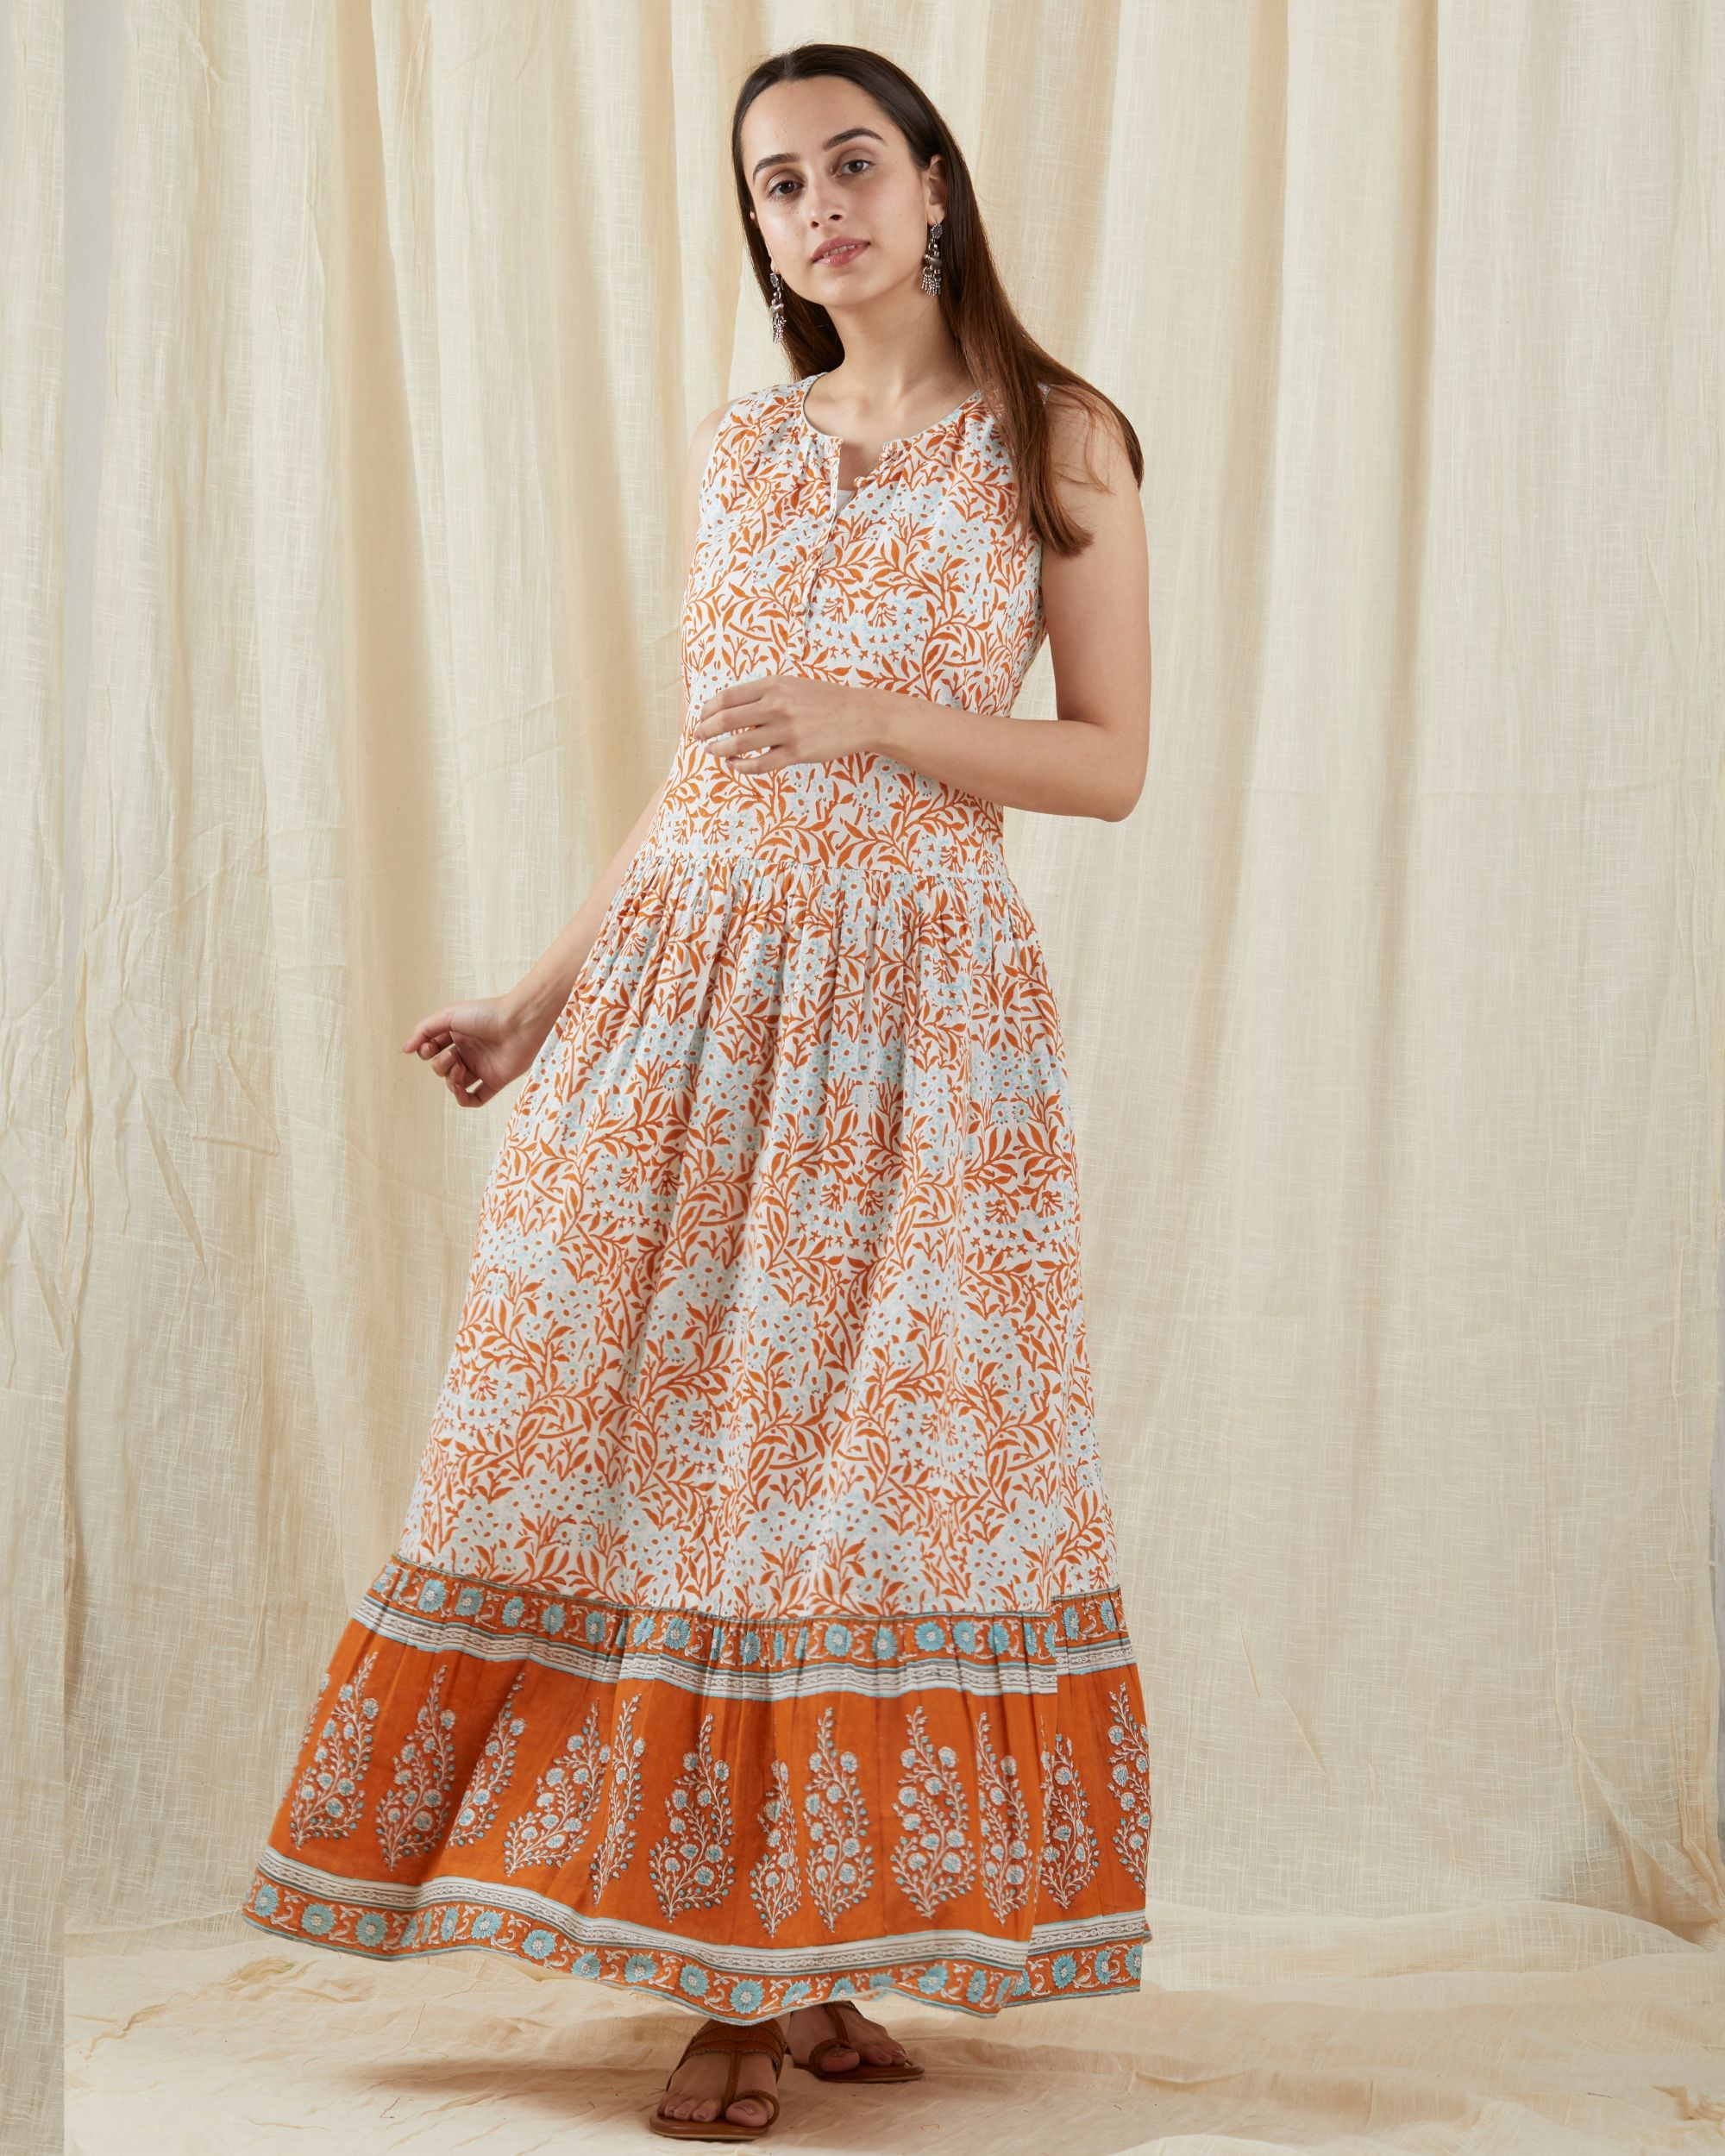 Aqua orange frilled dress